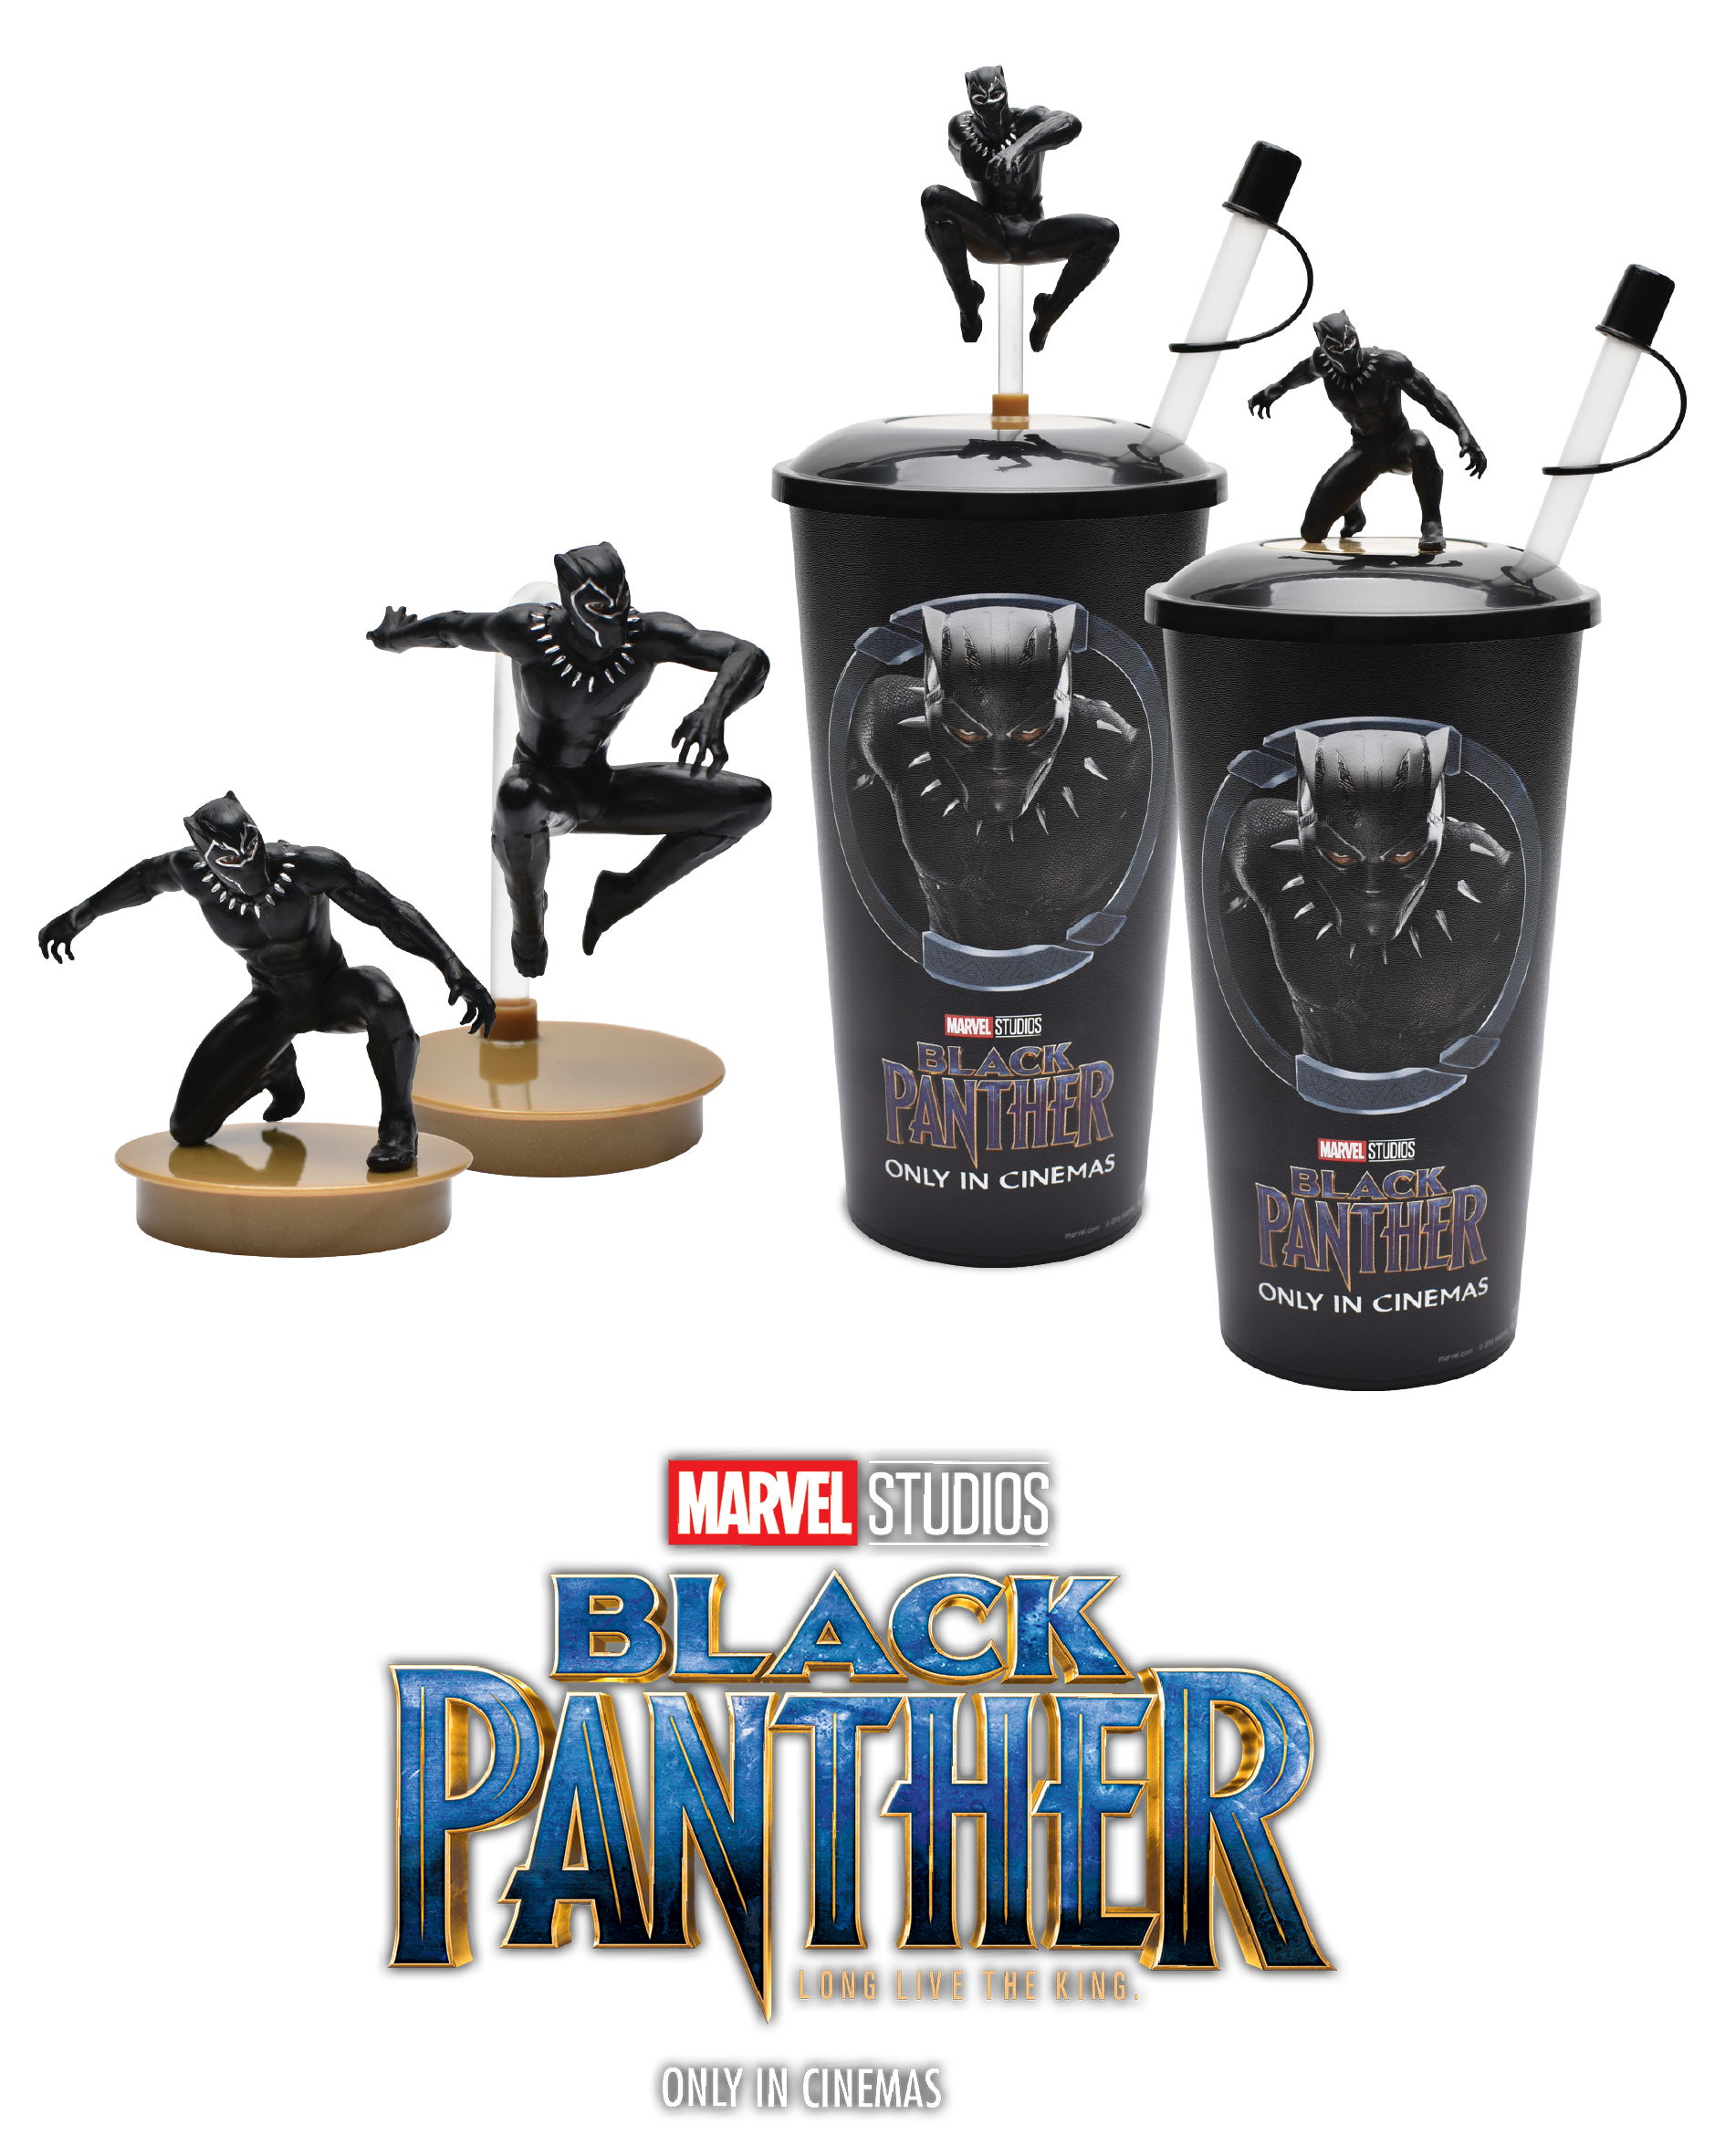 'Black Panther , 2018' - TOPPER CUP - CGV